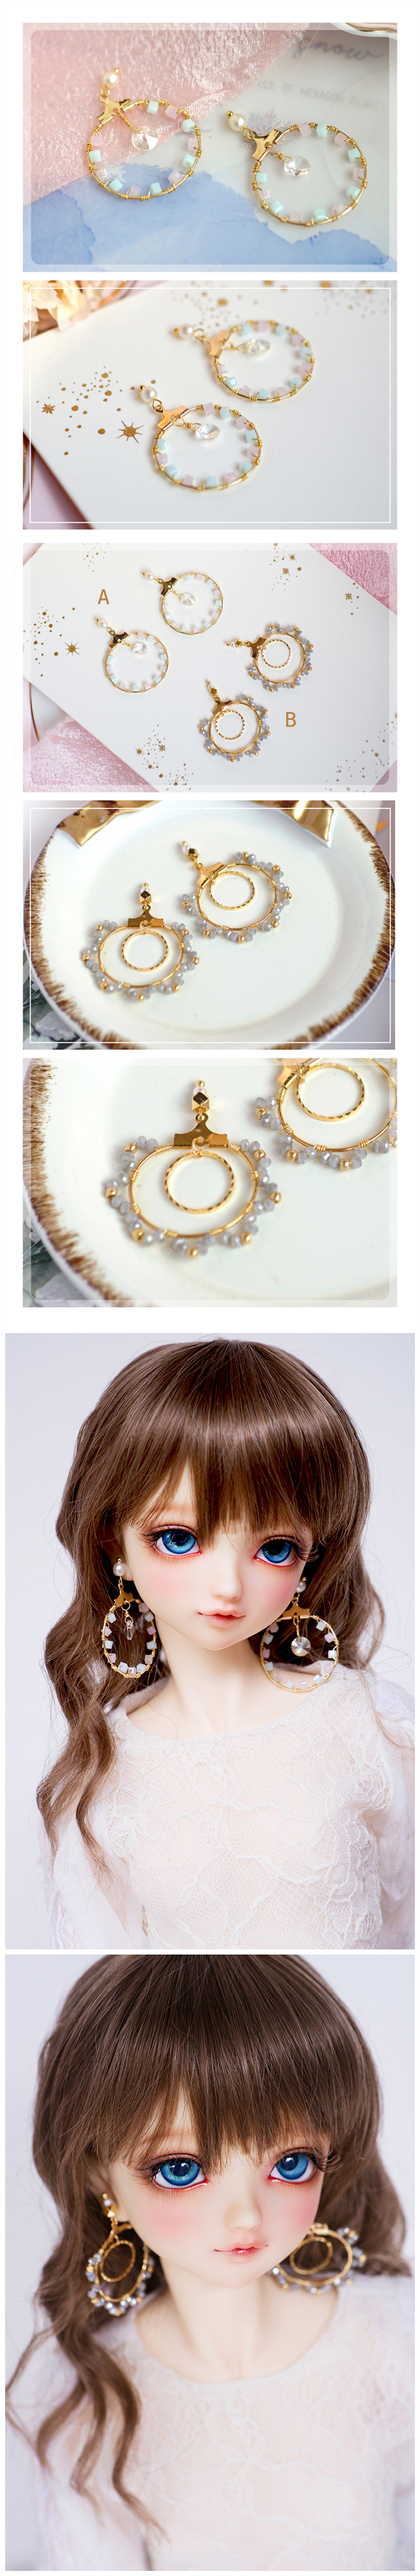 Accessaries Earrings Decoration X031 For SD